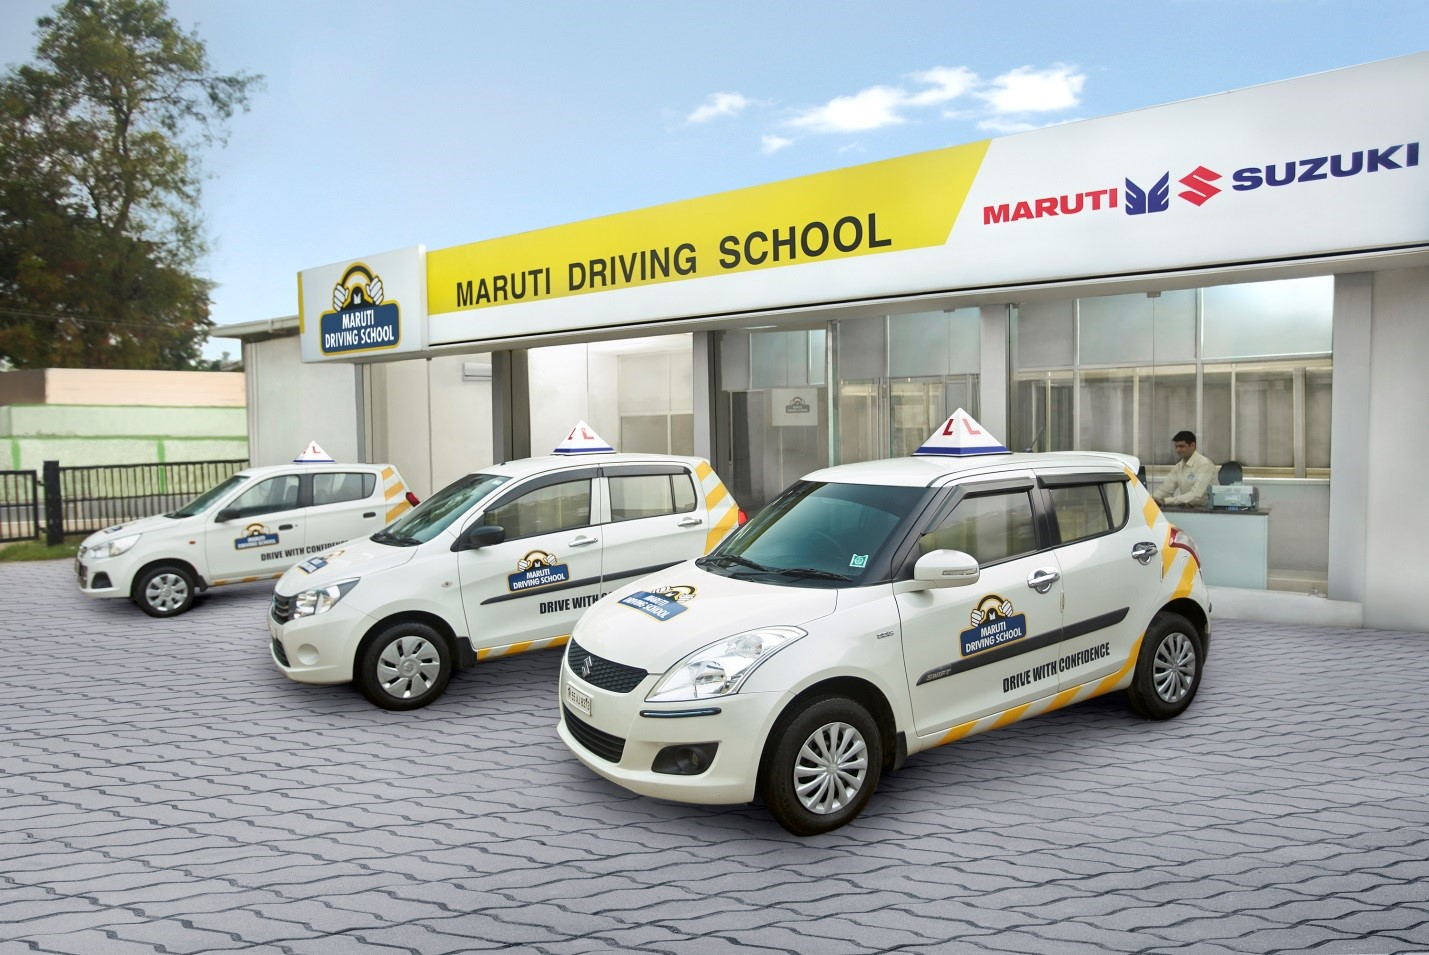 How is Maruti Driving School Different From Other Local Driving School?